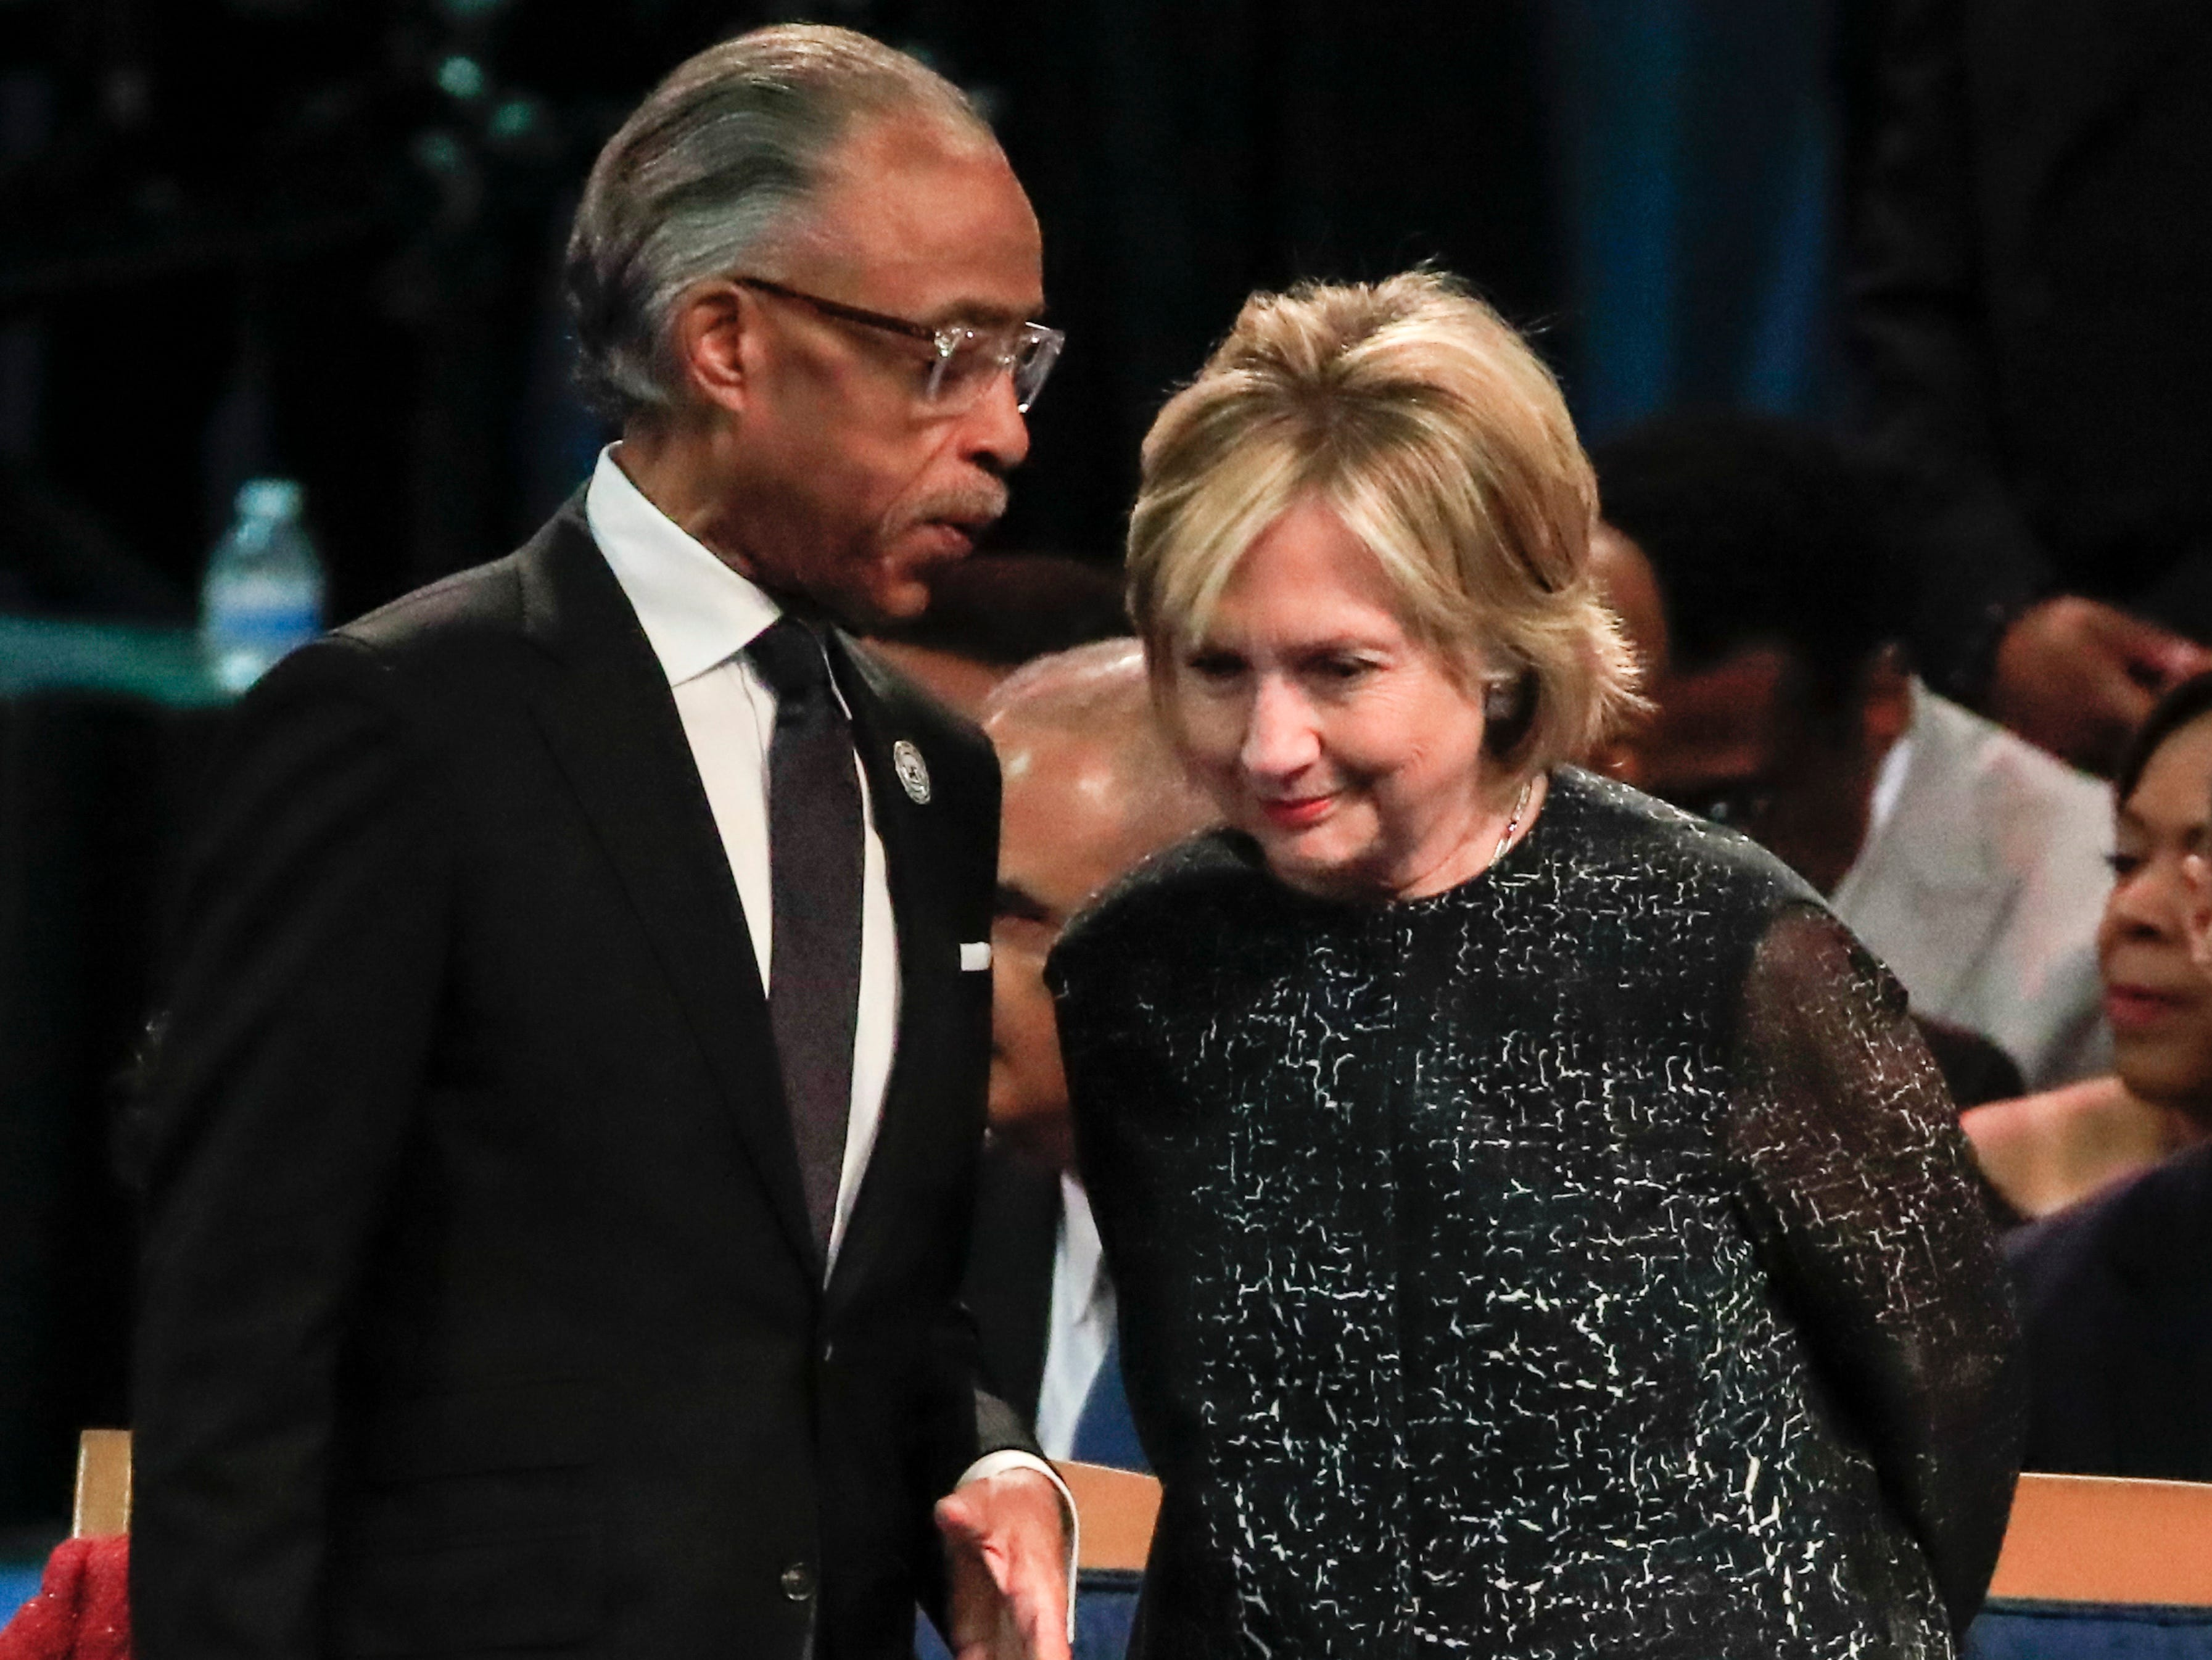 epa06987290 The Reverend Al Sharpton talks with Hillary Clinton before the start of funeral services for US singer Aretha Franklin at the Greater Grace Temple in Detroit, Michigan, USA, 31 August 2018. Aretha Franklin, known as the Queen of Soul for recording hits such as RESPECT, Chain of Fools and many others, died 16 August 2018 from pancreatic cancer and will be buried in Woodlawn Cemetery on 31 August.  EPA-EFE/TANNEN MAURY ORG XMIT: THM11